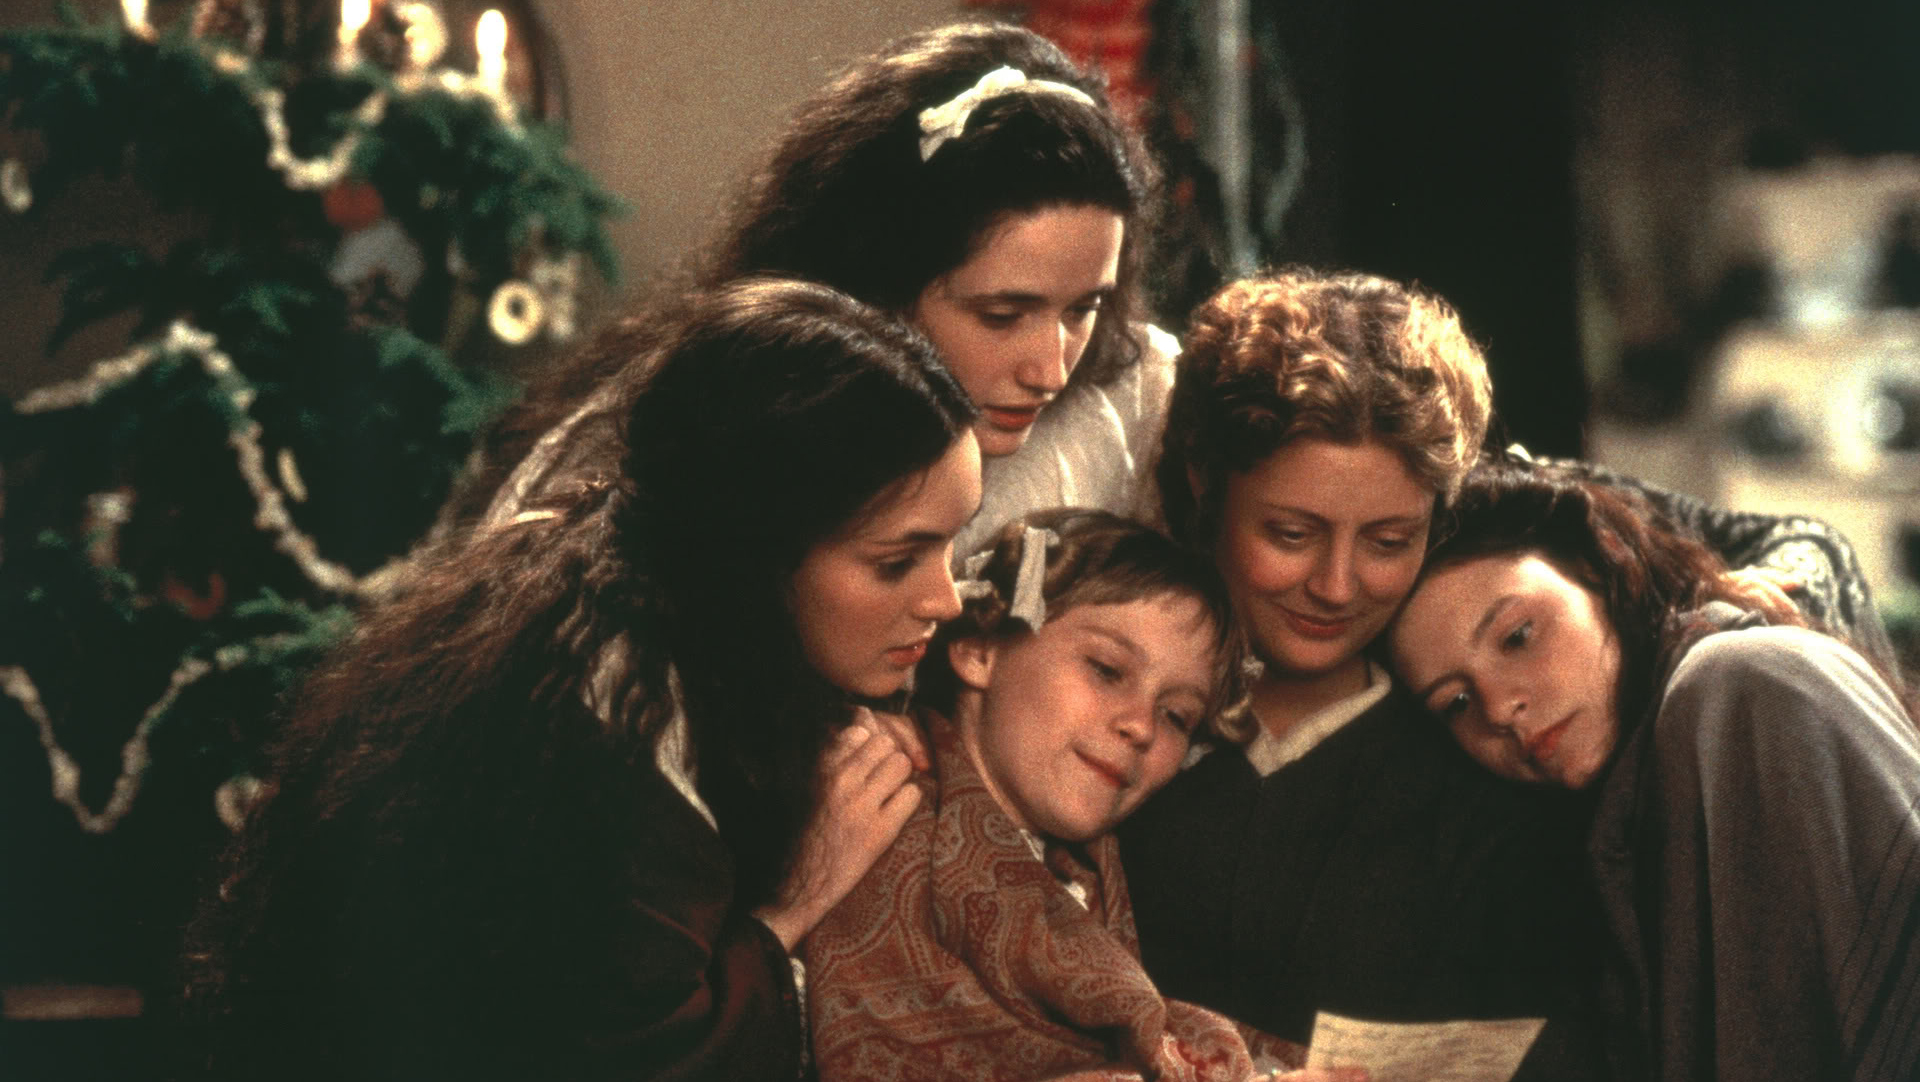 Little Women (1994 film adaptation)